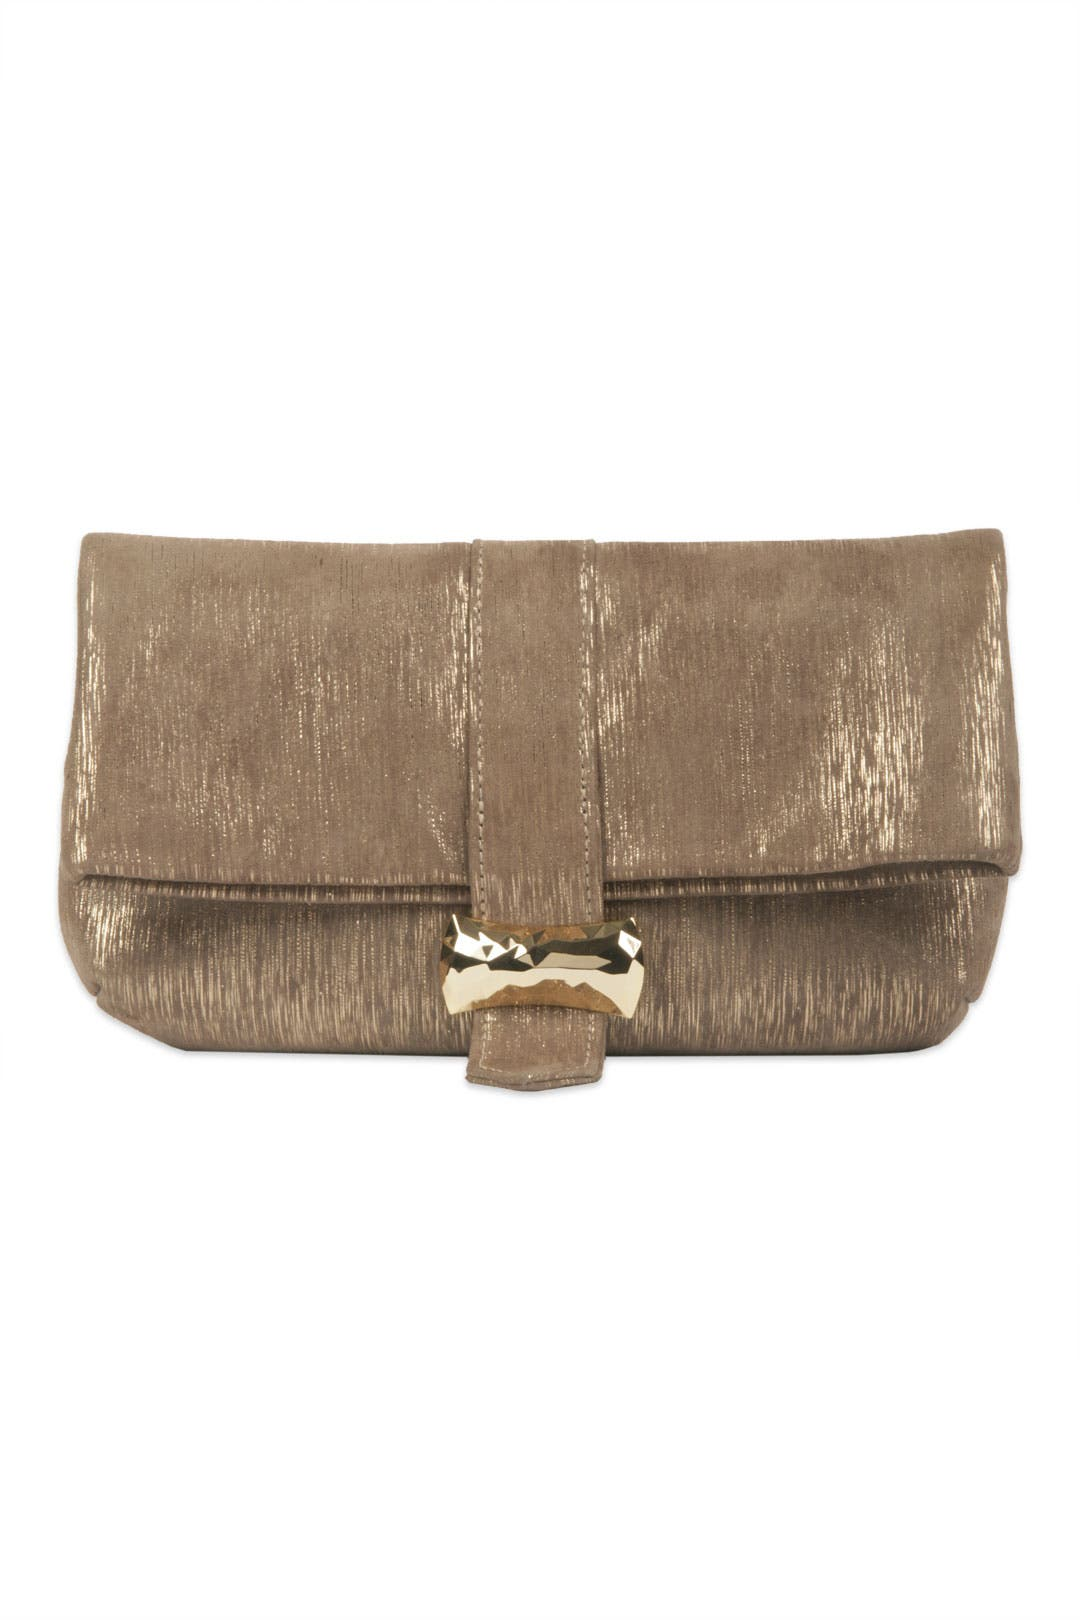 Hudson Metallic Lines Clutch by Lauren Merkin